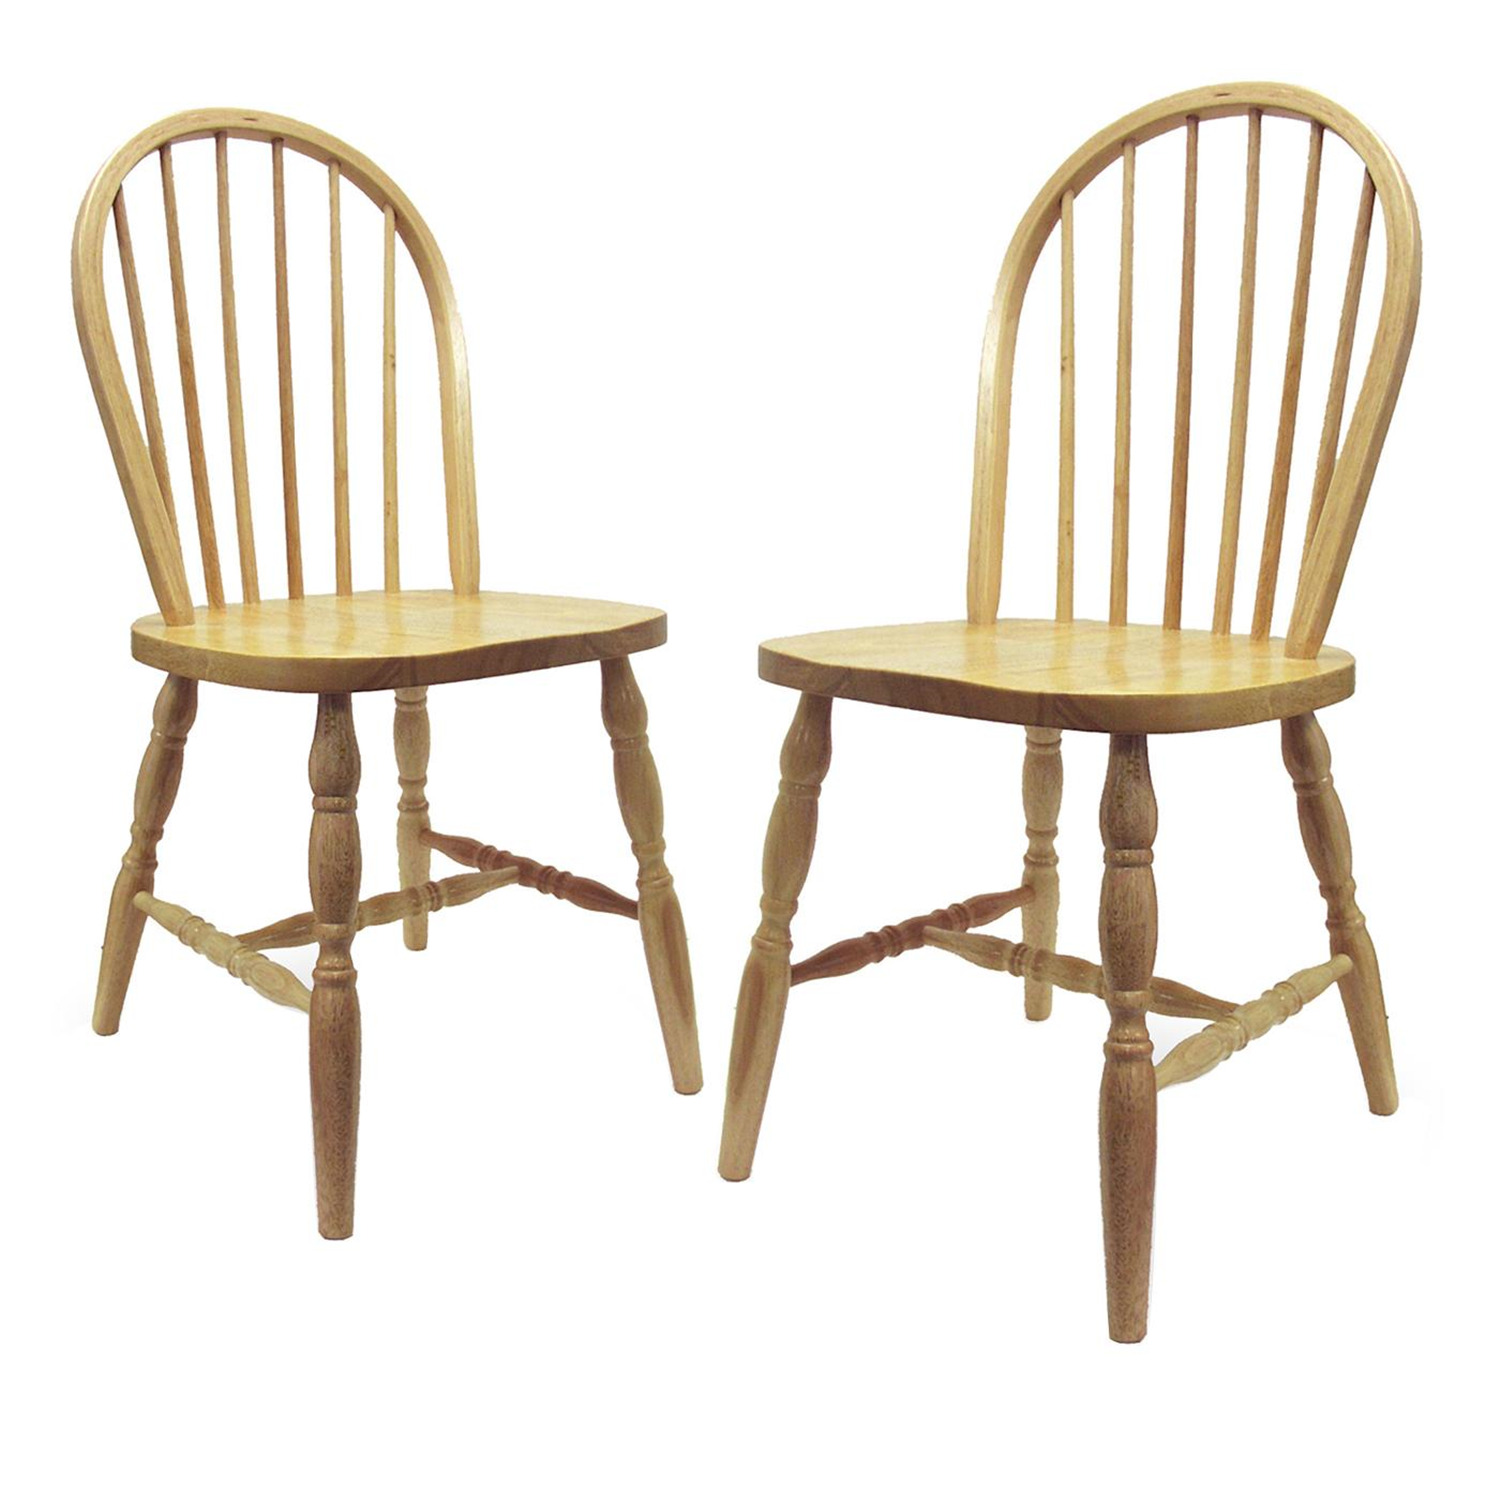 Windsor Kitchen Chairs: Set Of 2, Windsor Chair Turn Legs, Assembled